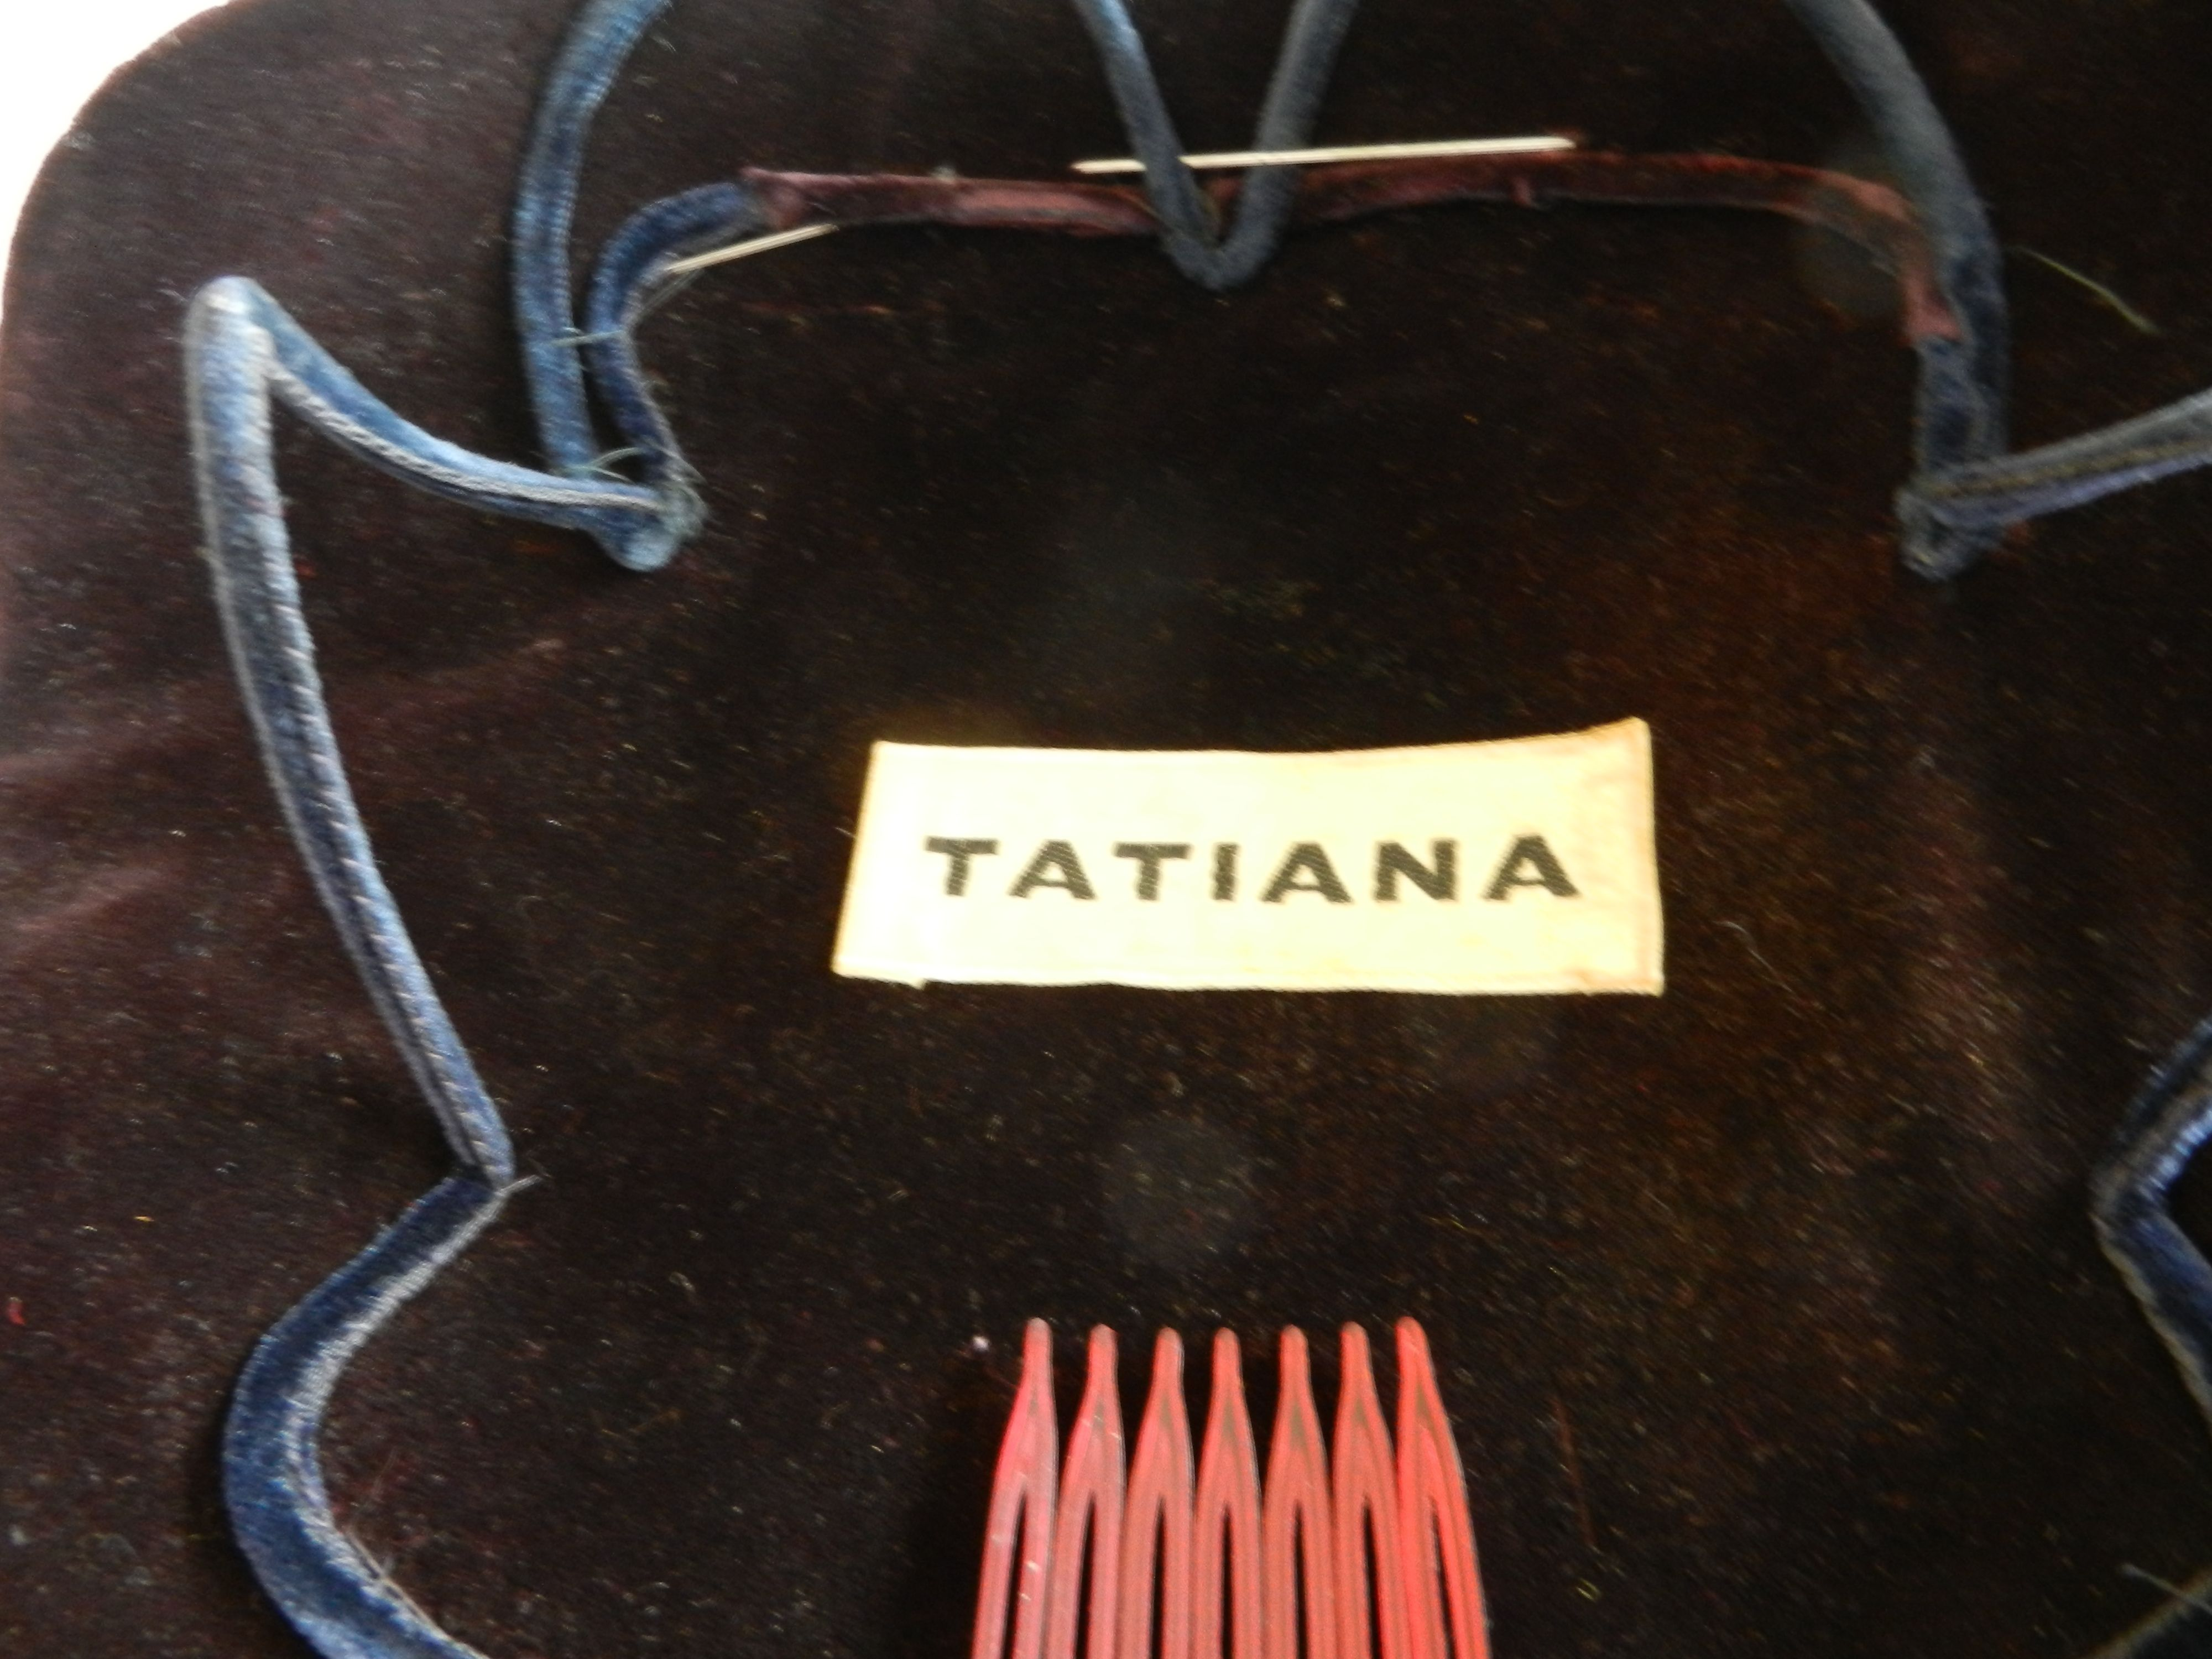 Tatiana eggplant velvet with navy satin accents. Probably 1950s, during her prime as a designer for Saks Fifth Ave. Label